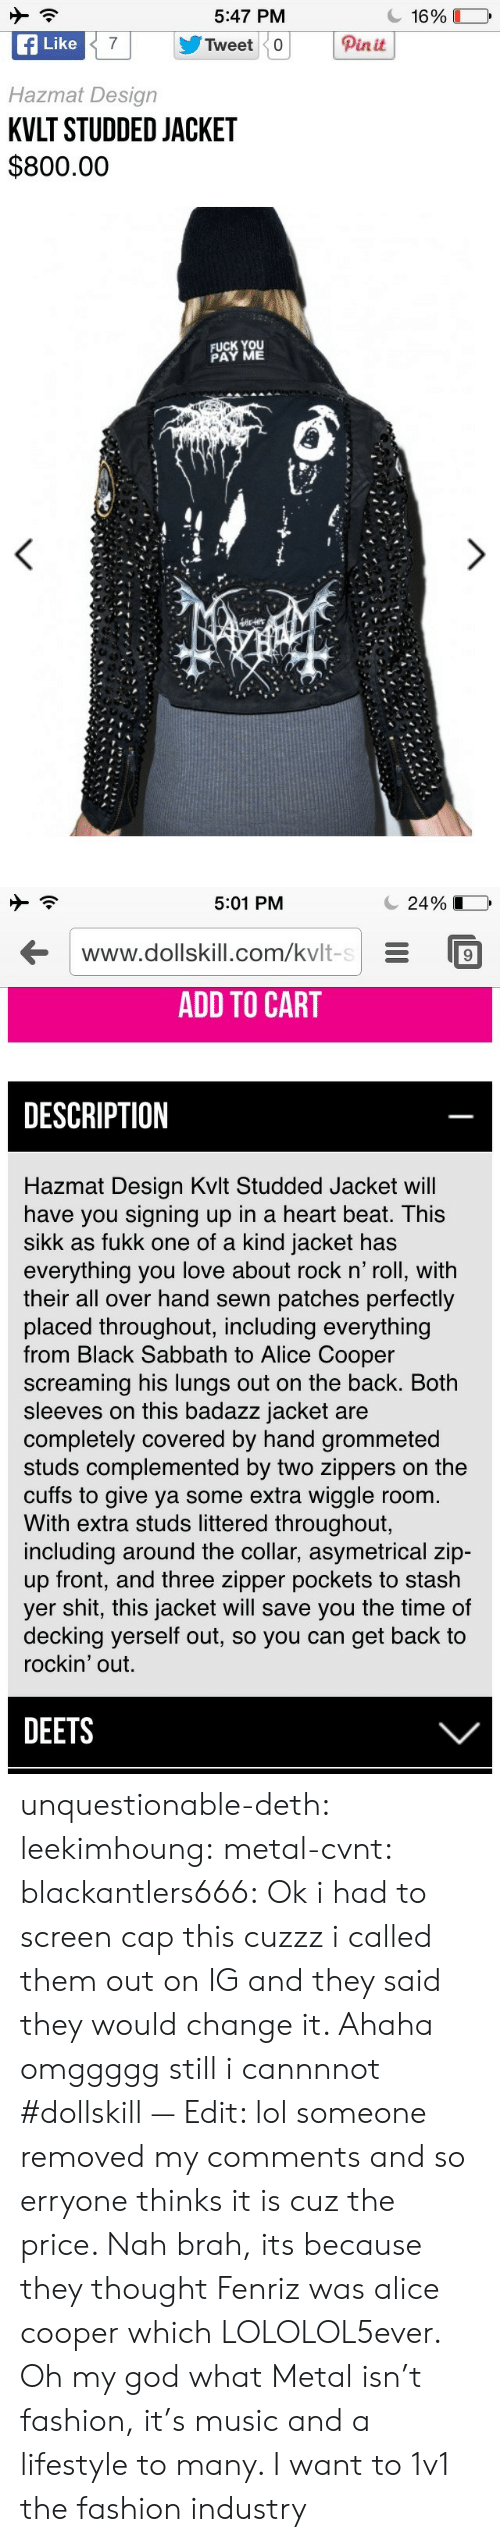 sabbath: 5:47 PM  f Like  Hazmat Design  KVLT STUDDED JACKET  $800.00  Pinit  FUCK YOU  PAY ME   5:01 PM  С 24 901  www.dollskill.com/kvlt-sE9  ADD TO CART  DESCRIPTION  Hazmat Design Kvlt Studded Jacket wil  have you signing up in a heart beat. This  sikk as fukk one of a kind jacket has  everything you love about rock n' roll, with  their all over hand sewn patches perfectly  placed throughout, including everything  from Black Sabbath to Alice Cooper  screaming his lungs out on the back. Both  sleeves on this badazz jacket are  completely covered by hand grommeted  studs complemented by two zippers on the  cuffs to give ya some extra wiggle room.  With extra studs littered throughout,  including around the collar, asymetrical zip-  up front, and three zipper pockets to stash  yer shit, this jacket will save you the time of  decking yerself out, so you can get back to  rockin' out.  DEETS unquestionable-deth:  leekimhoung: metal-cvnt:   blackantlers666:   Ok i had to screen cap this cuzzz i called them out on IG and they said they would change it. Ahaha omggggg still i cannnnot  #dollskill  — Edit: lol someone removed my comments and so erryone thinks it is cuz the price. Nah brah, its because they thought Fenriz was alice cooper which LOLOLOL5ever.  Oh my god what     Metal isn't fashion, it's music and a lifestyle to many. I want to 1v1 the fashion industry